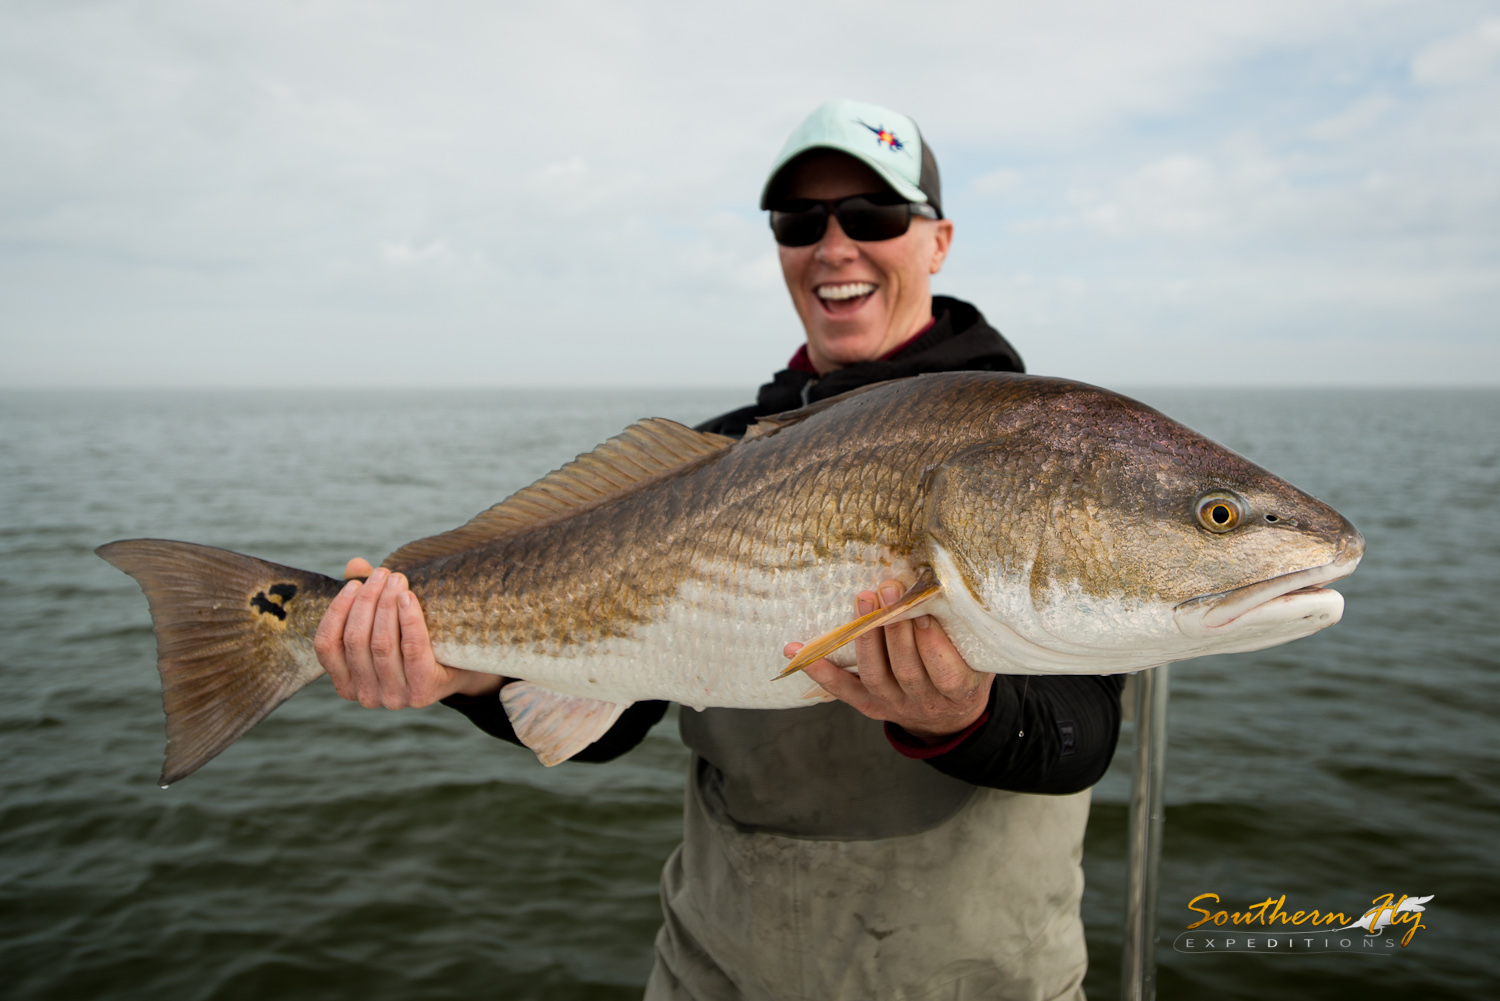 2018-12-30_SouthernFlyExpeditions_NewOrleans_JohnReader-1.jpg